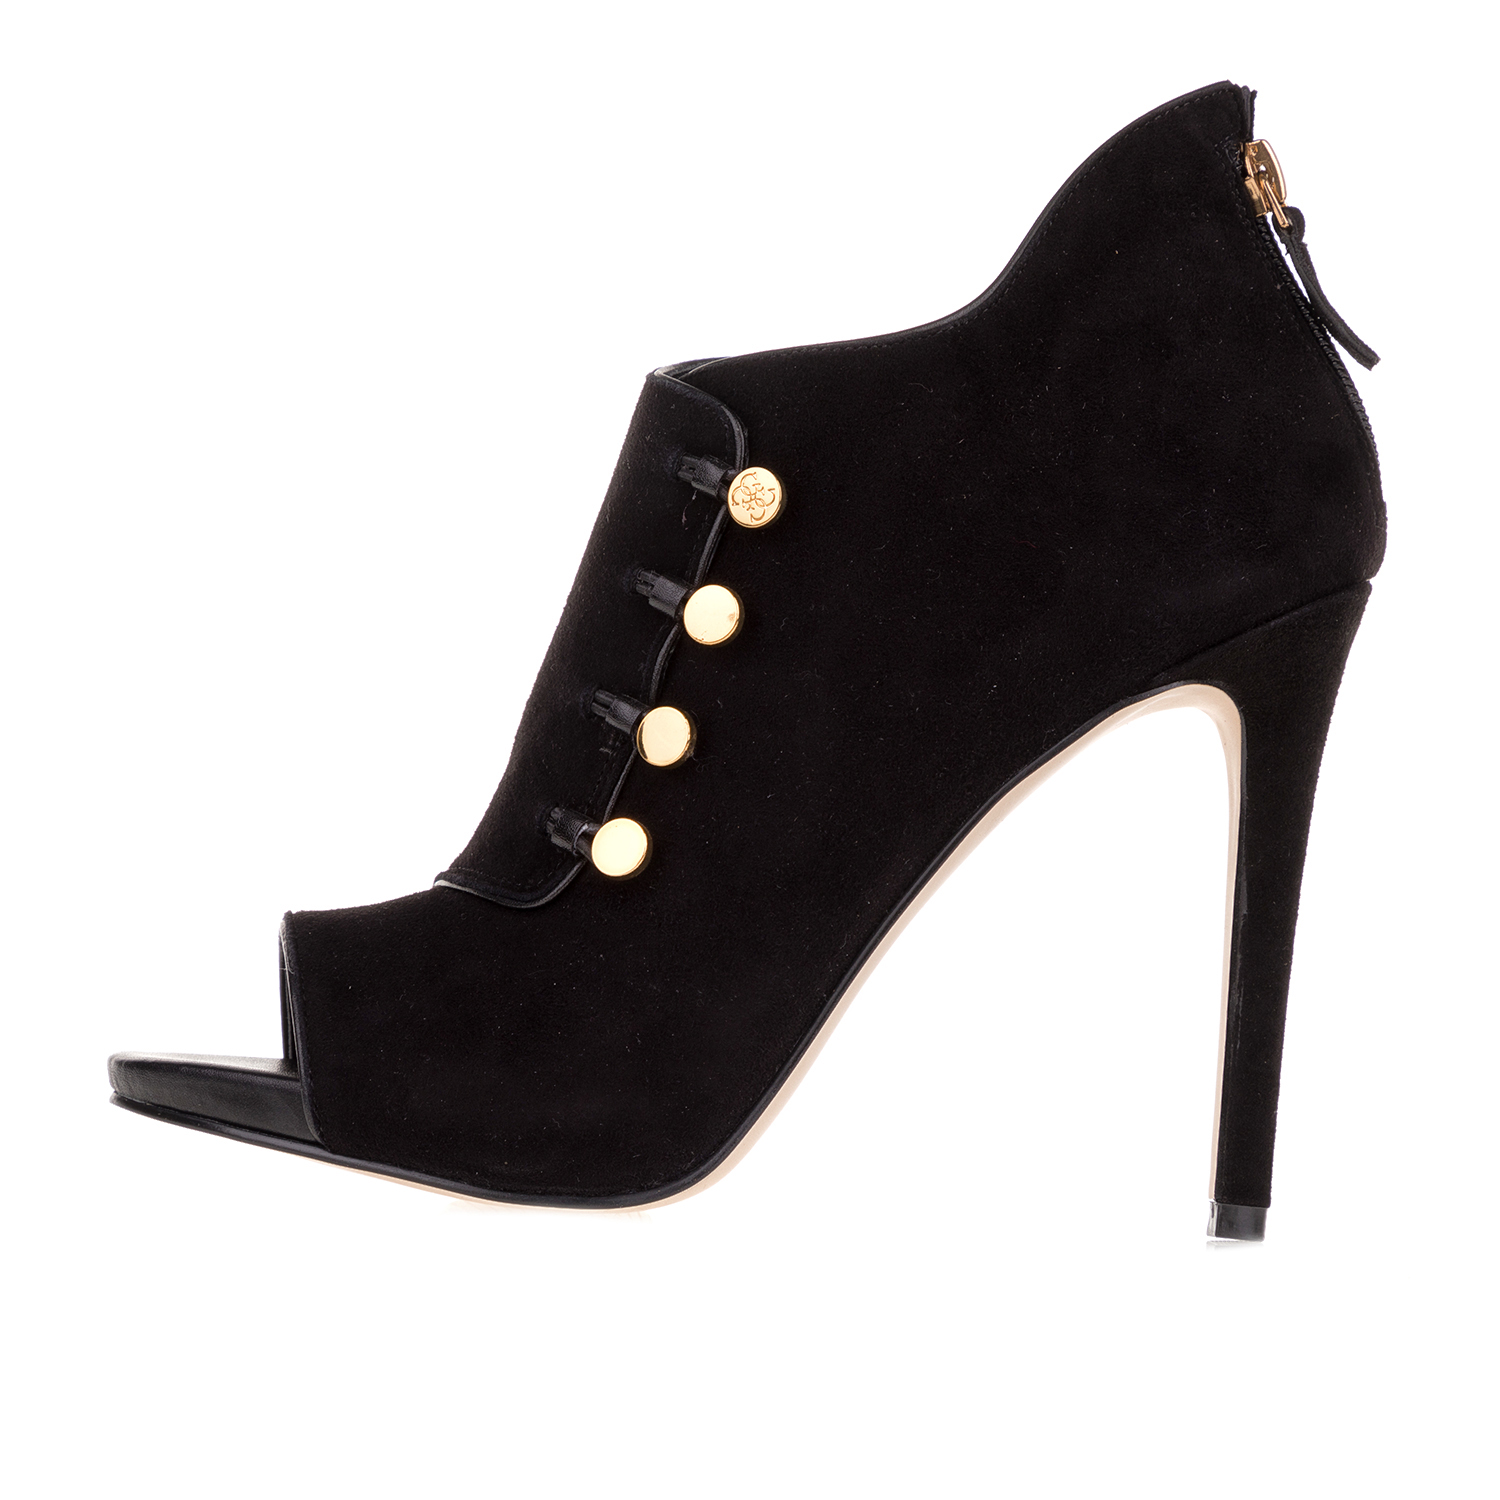 GUESS – Γυναικεία μποτάκια peep toe GUESS ABY SHOOTIE μαύρα